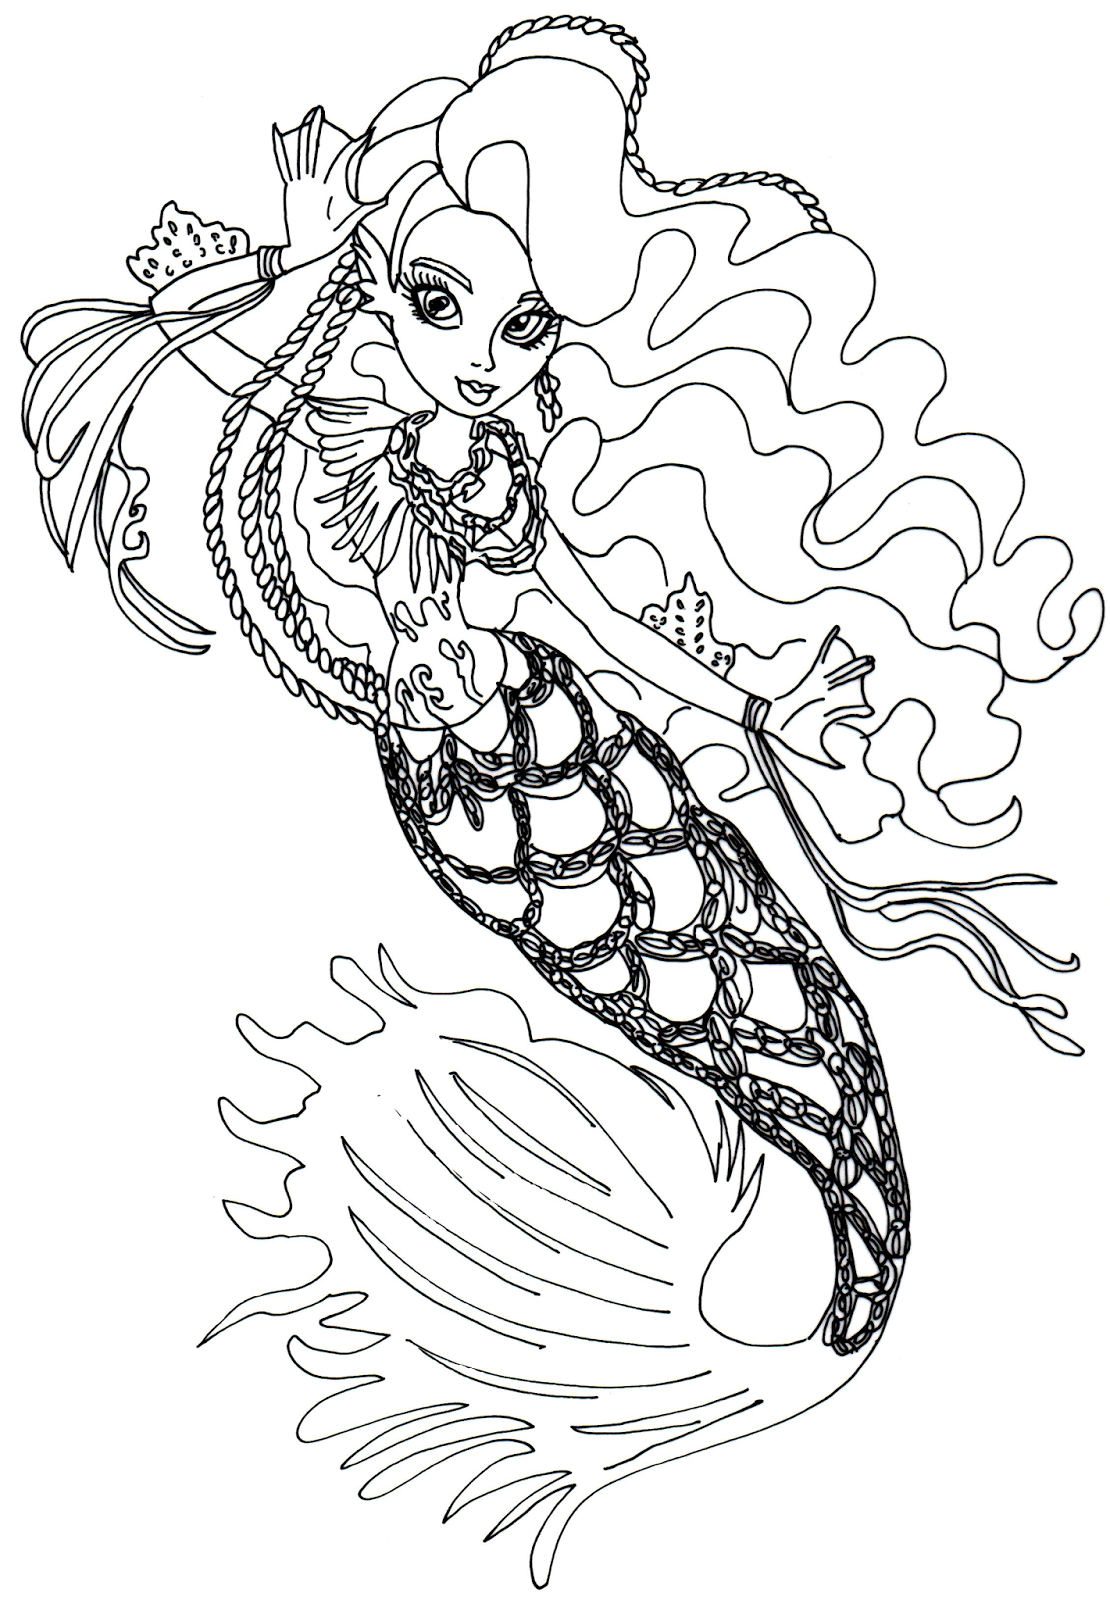 free printable monster high coloring page for sirena von boo in her basic outfit - Monster High Coloring Pages